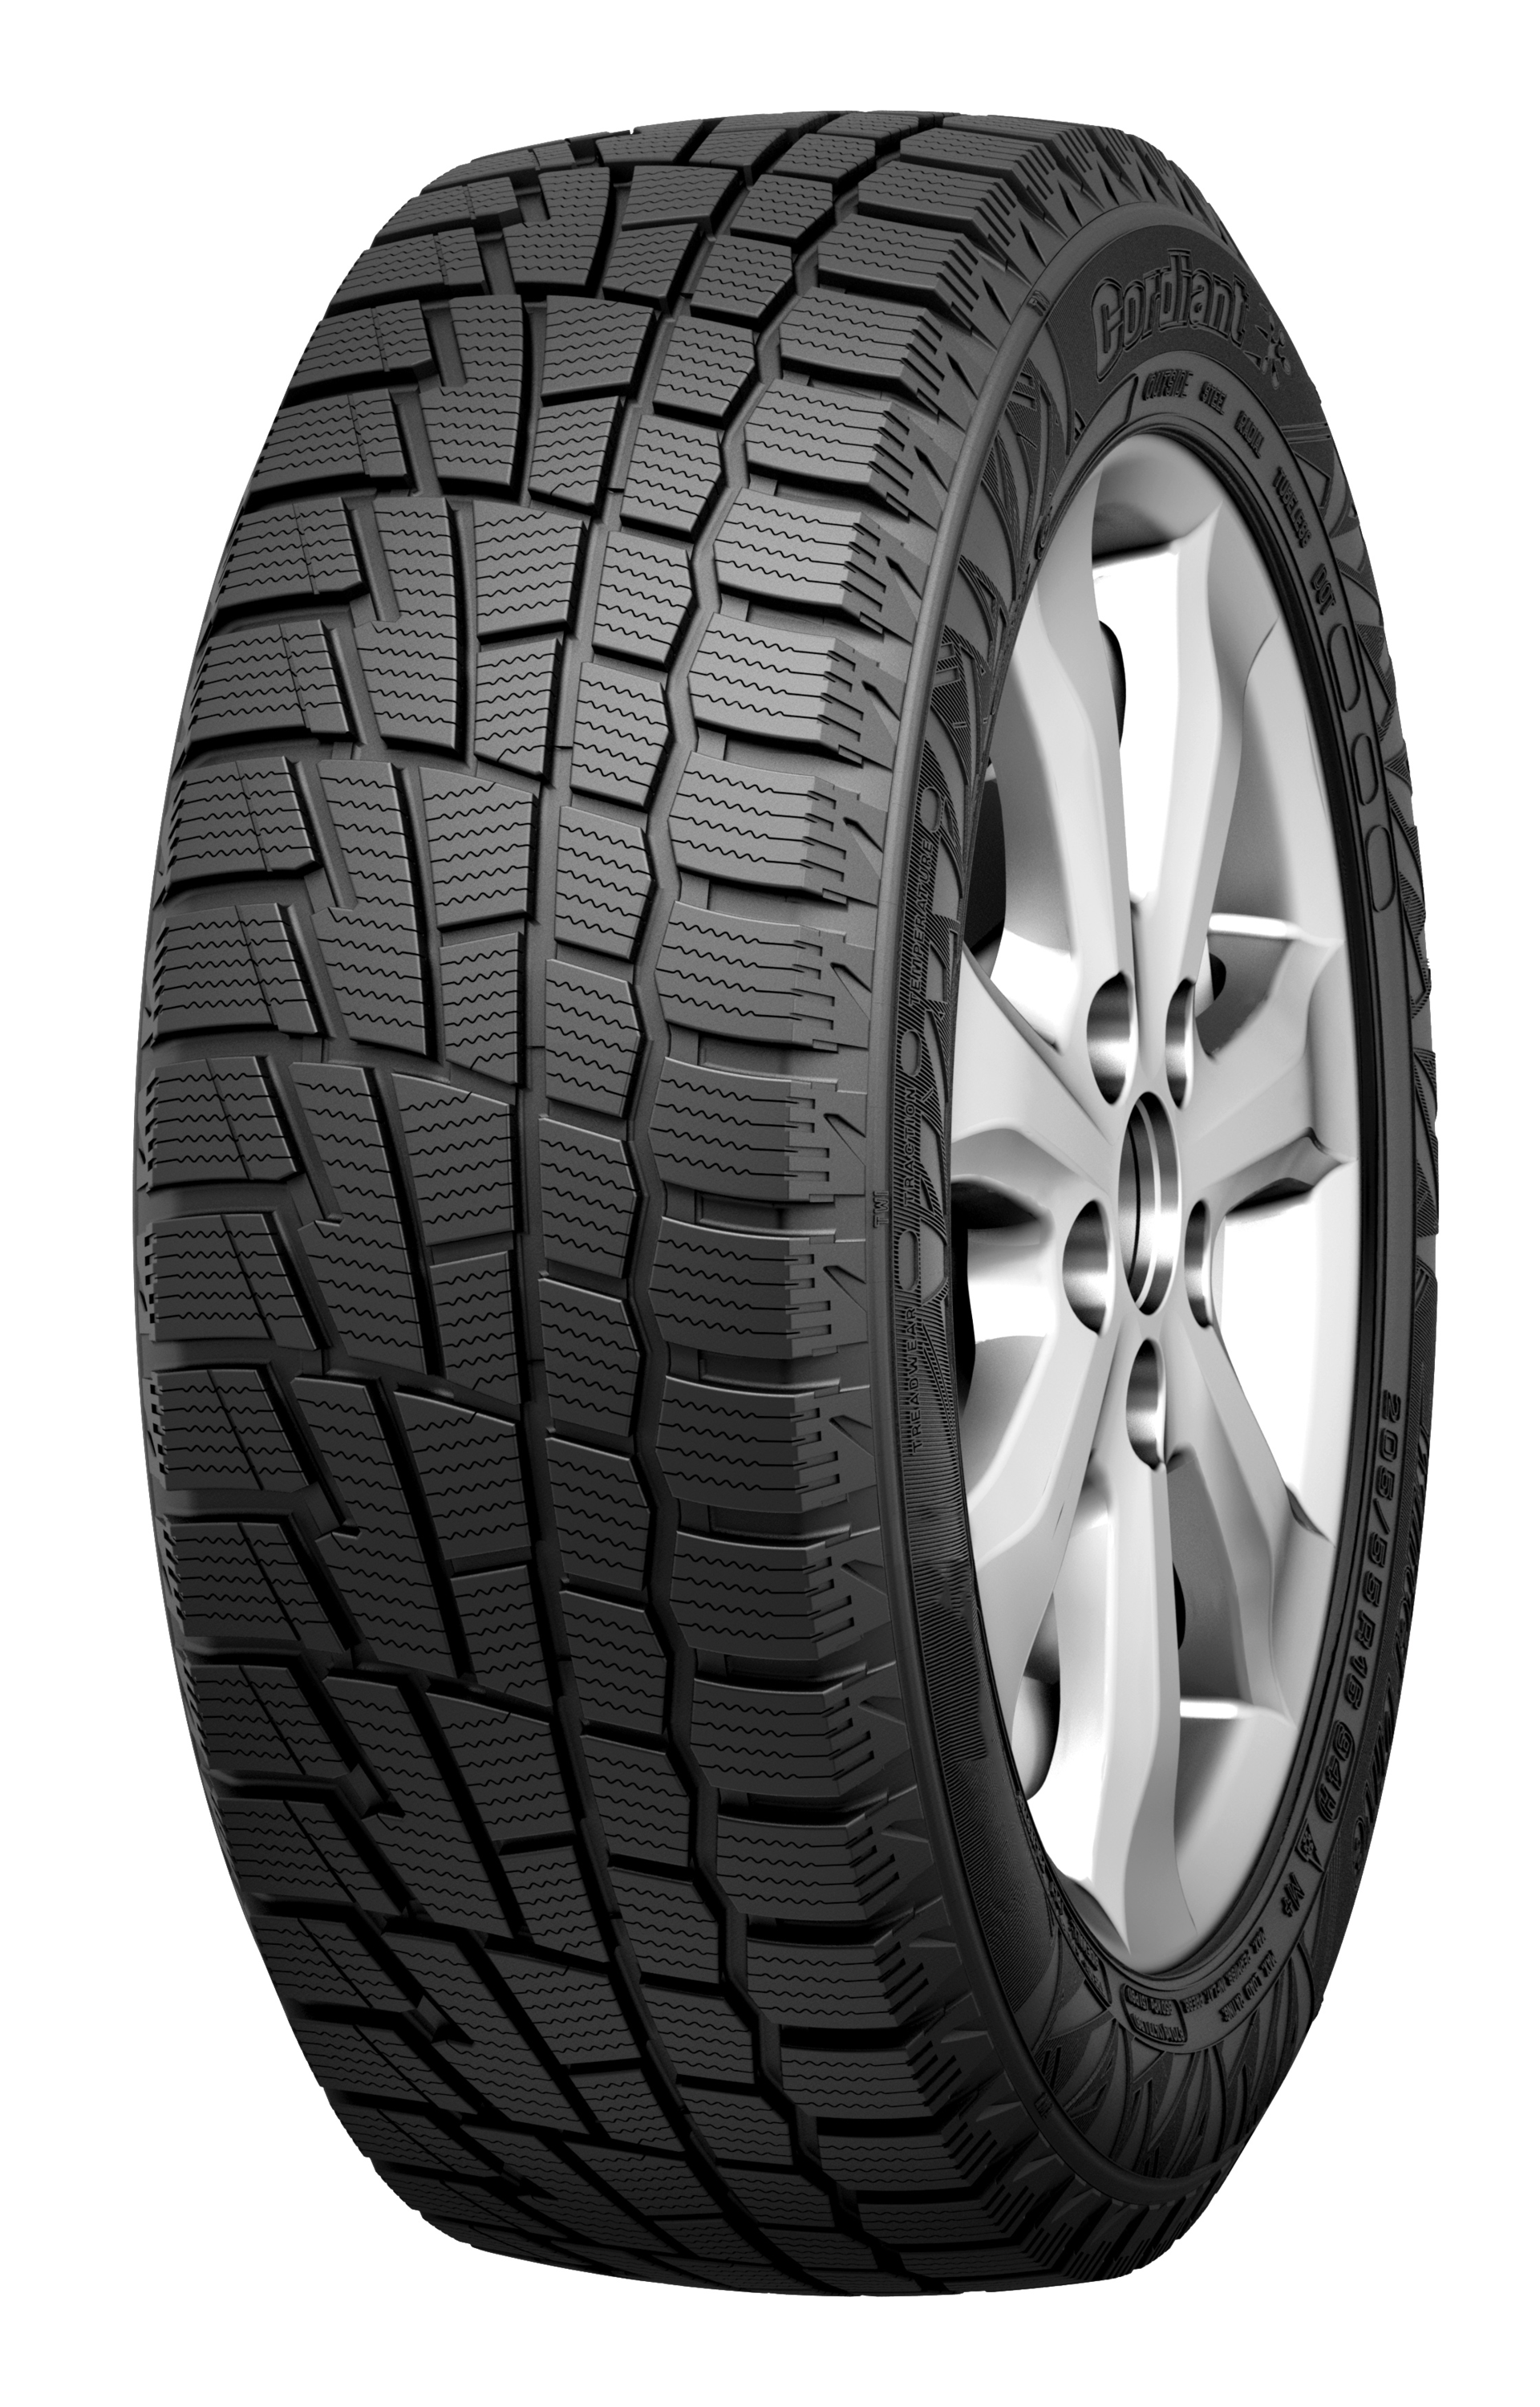 CORDIANT WINTER  DRIVE PW-1 155/70R13 б/к 75T